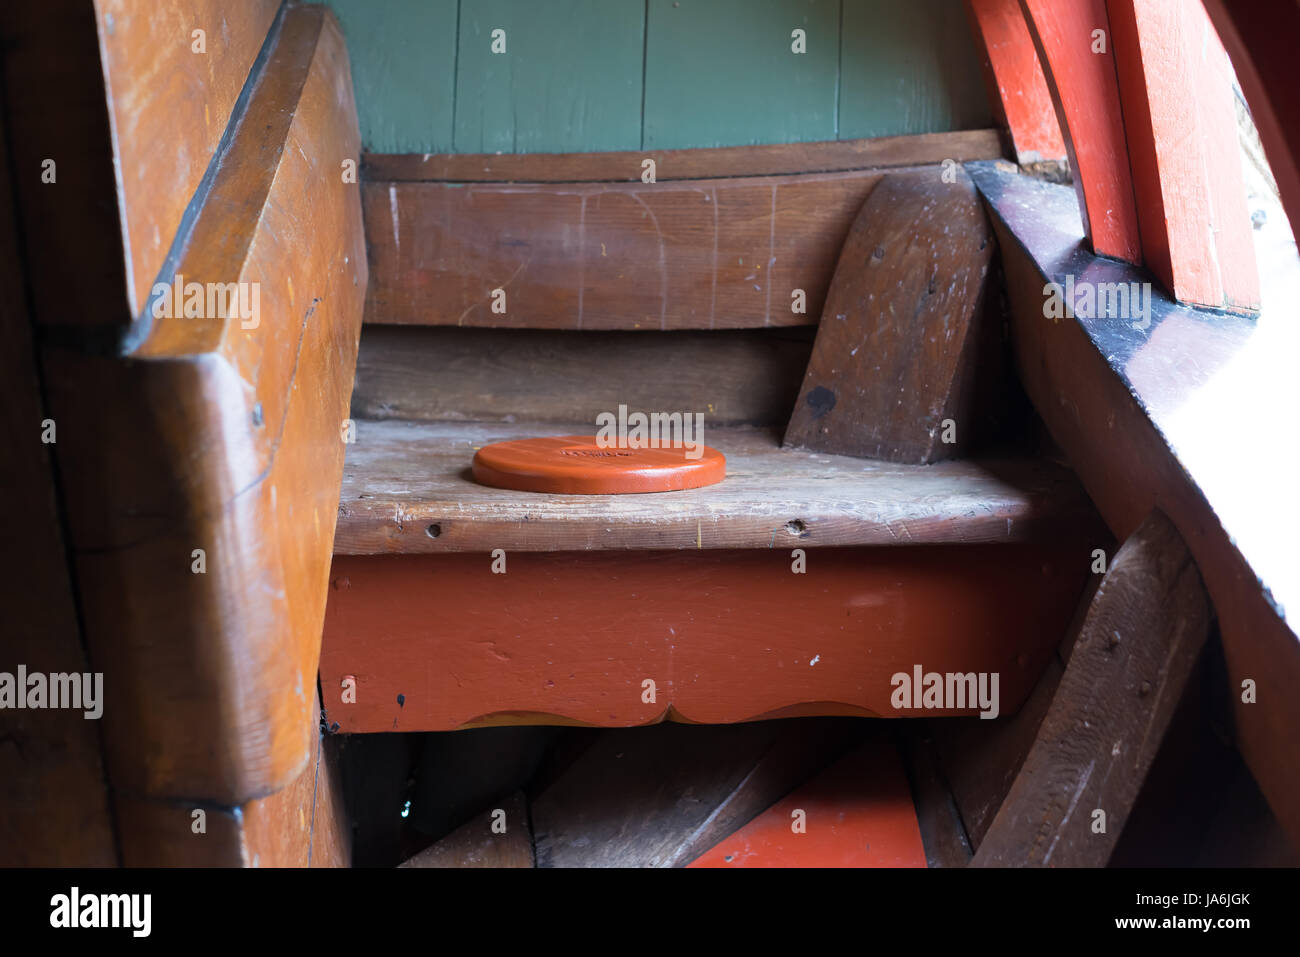 One of the rear toilets on board of the Batavia a replica 17th century Dutch Galleon - Stock Image